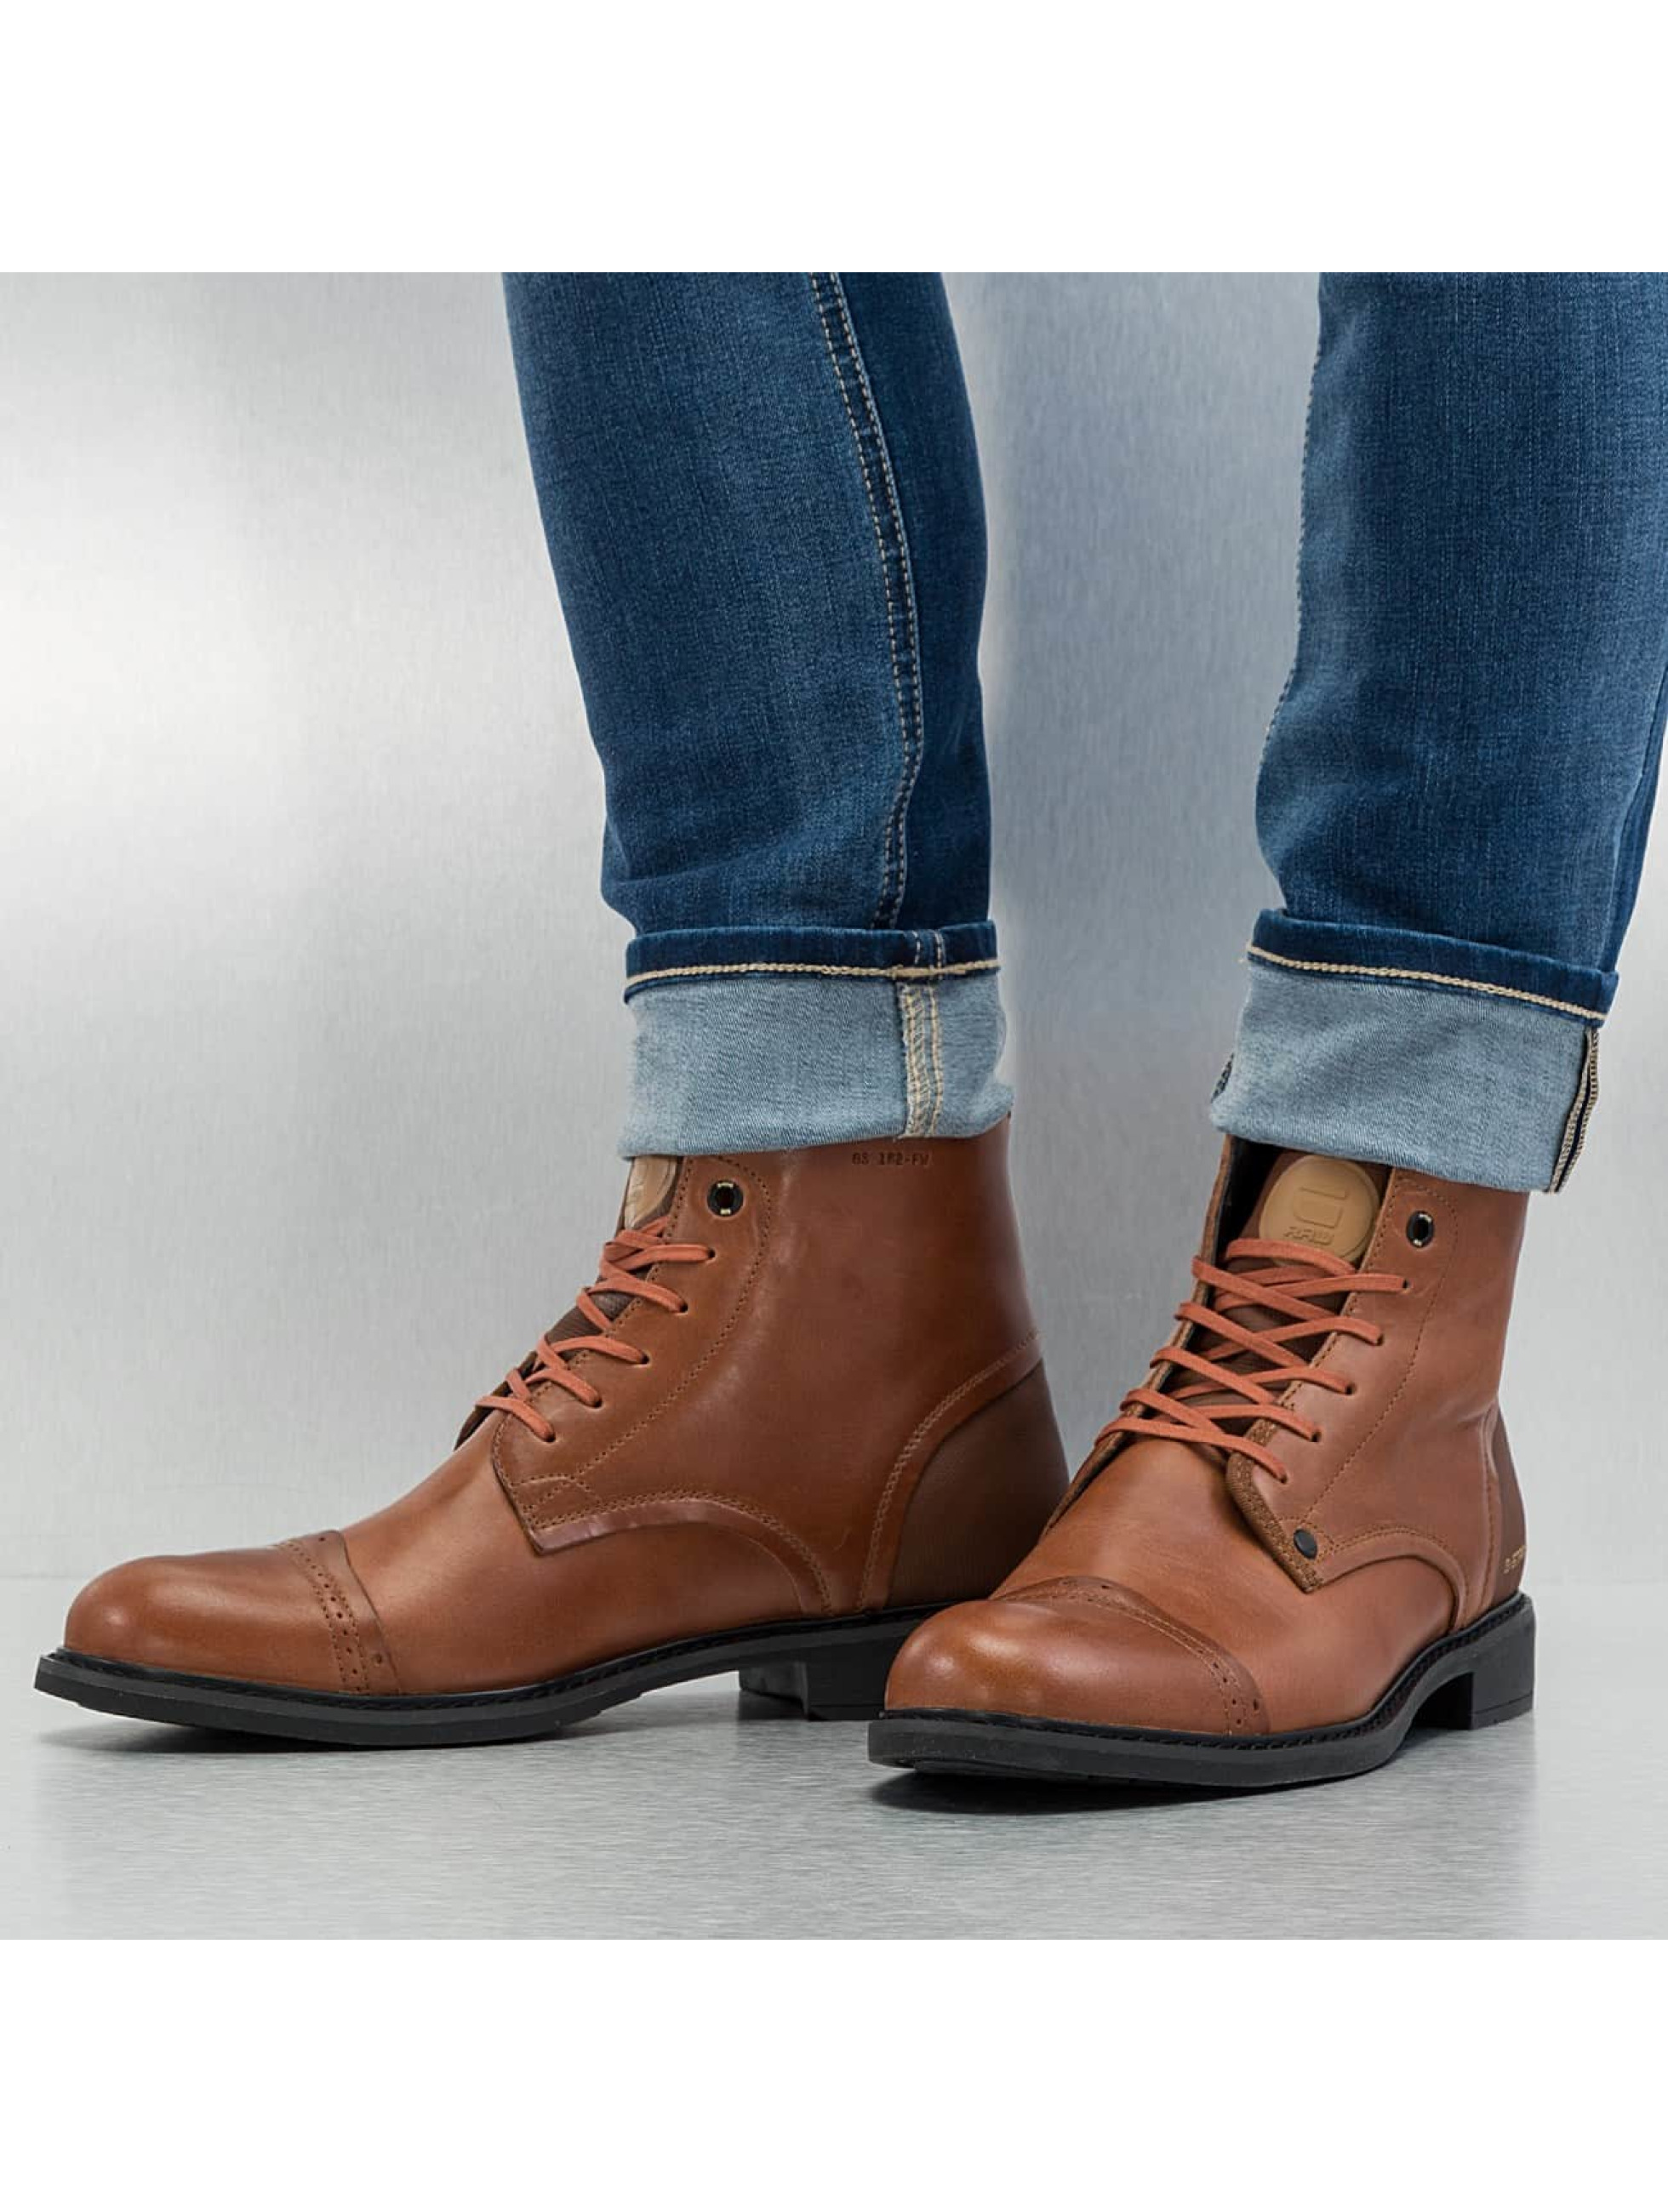 Boots Warth Leather in braun